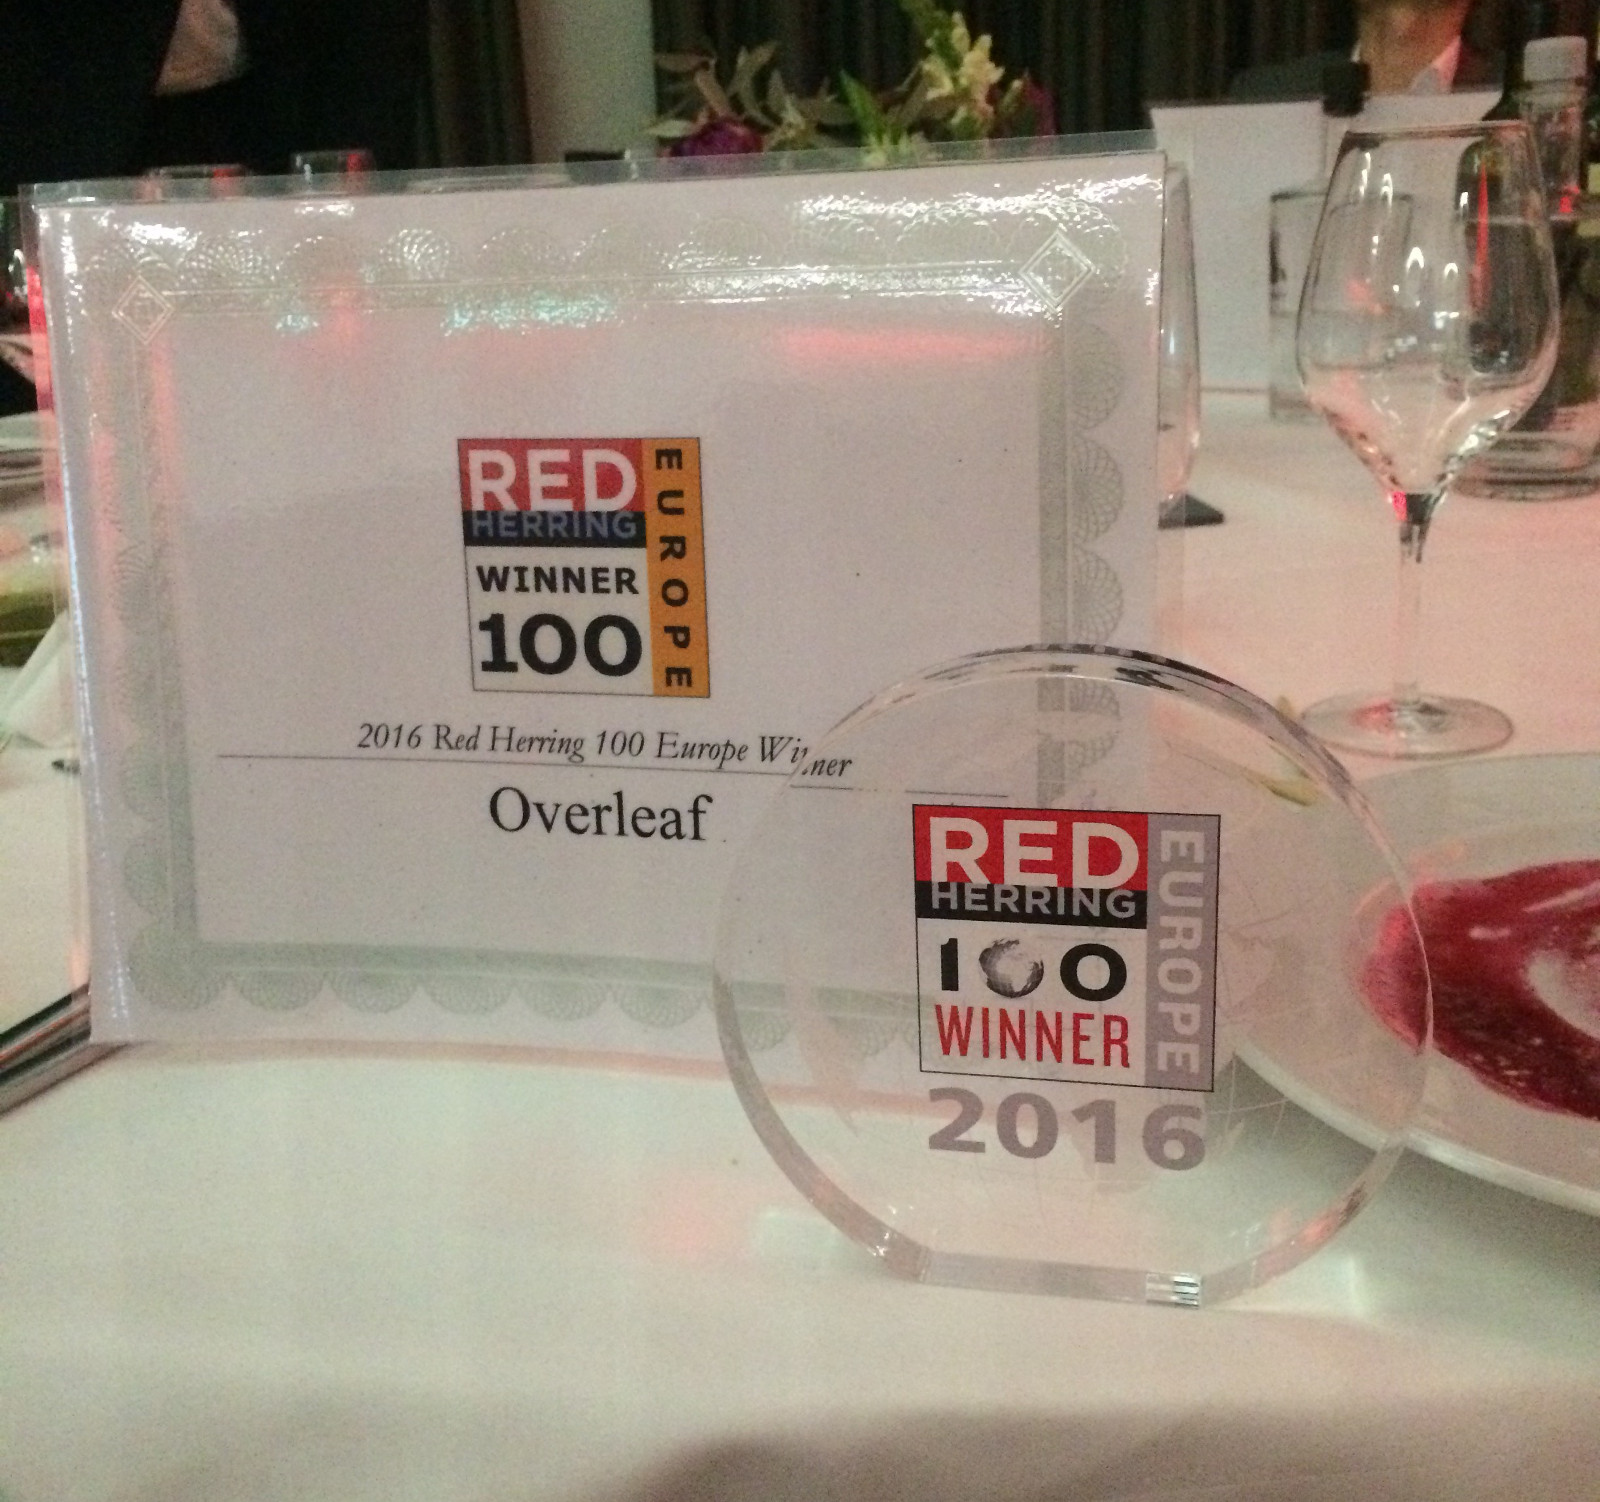 Red Herring Top 100 Europe Winner Overleaf Award Night Photo